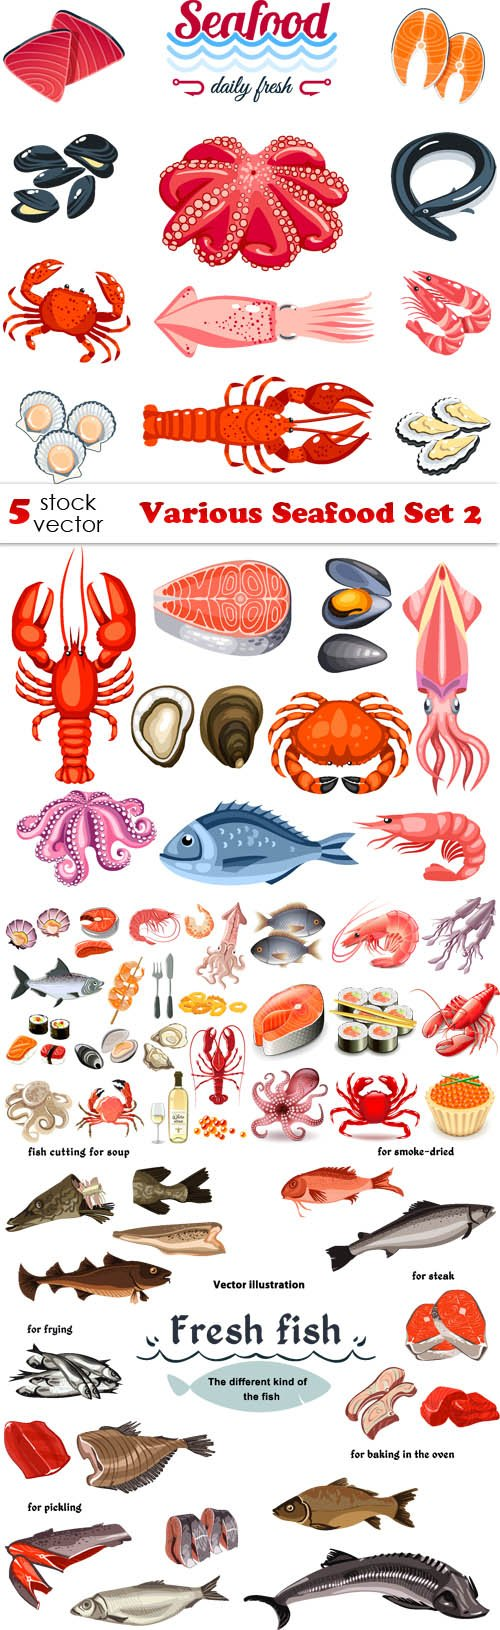 Vectors - Various Seafood Set 2